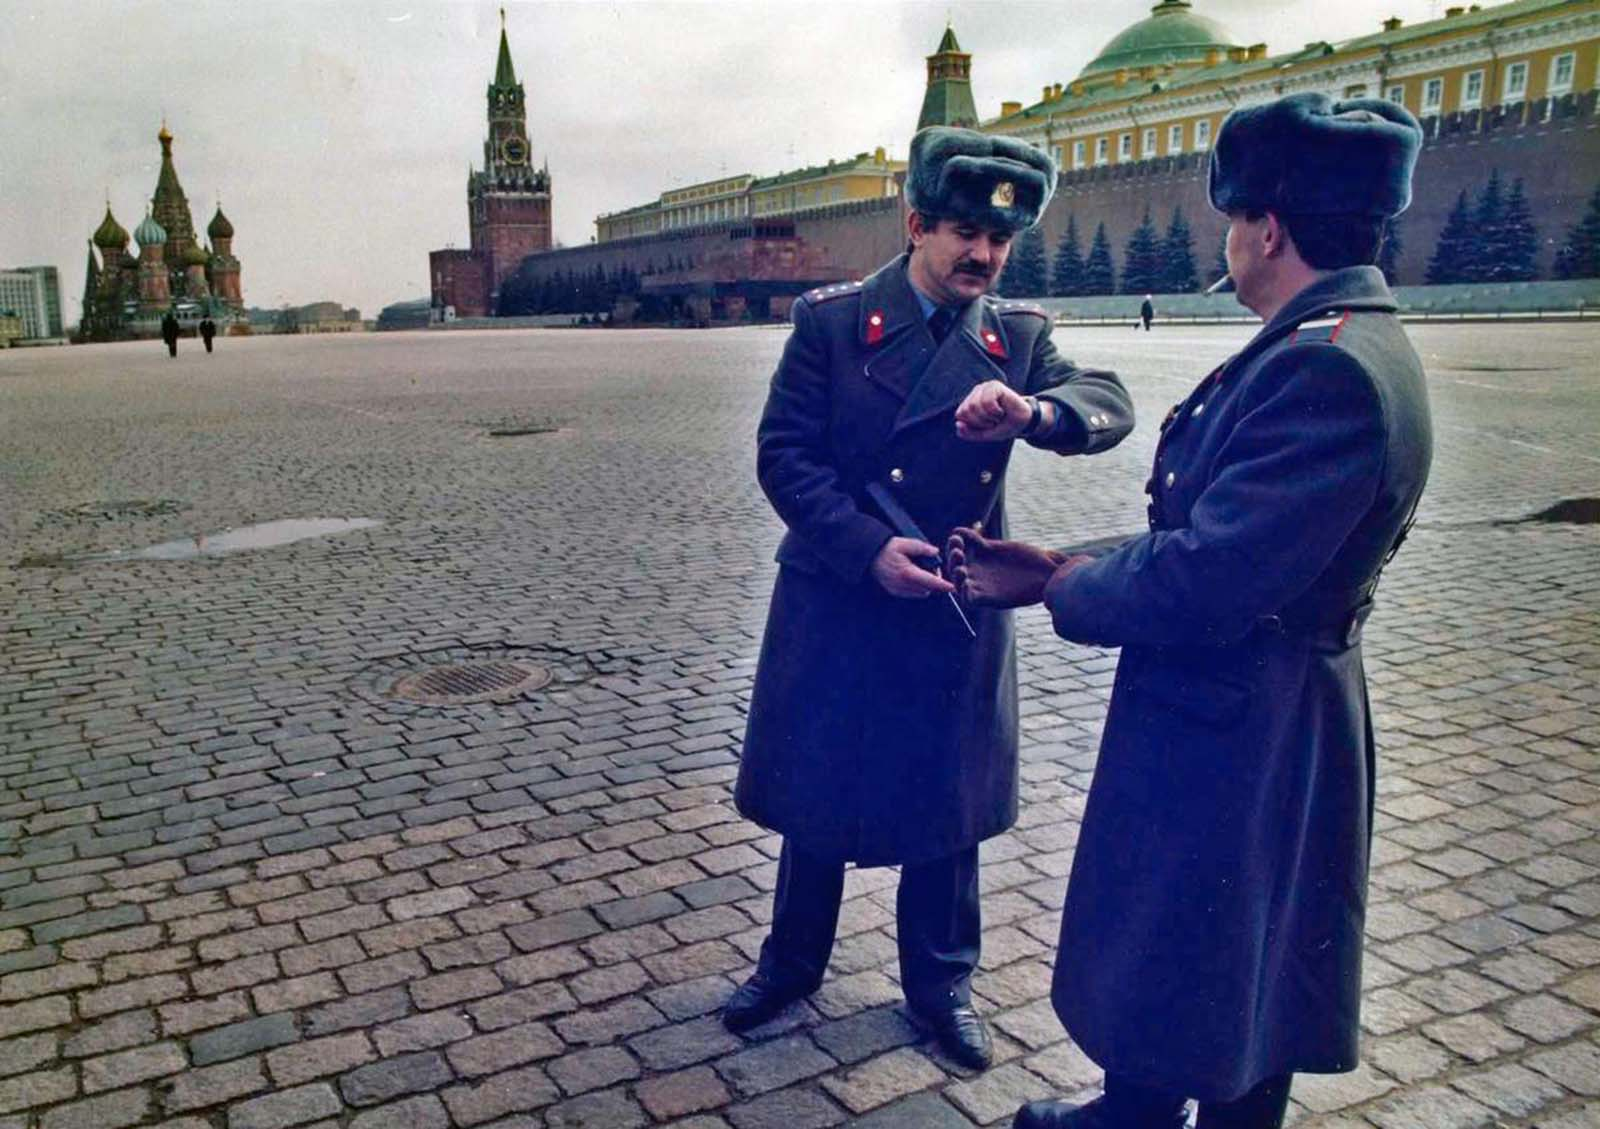 Soviet soldiers patrol an emptied Red Square in Moscow, on March 27, 1991, after the area had been blocked off in anticipation of a pro-Yeltsin rally.